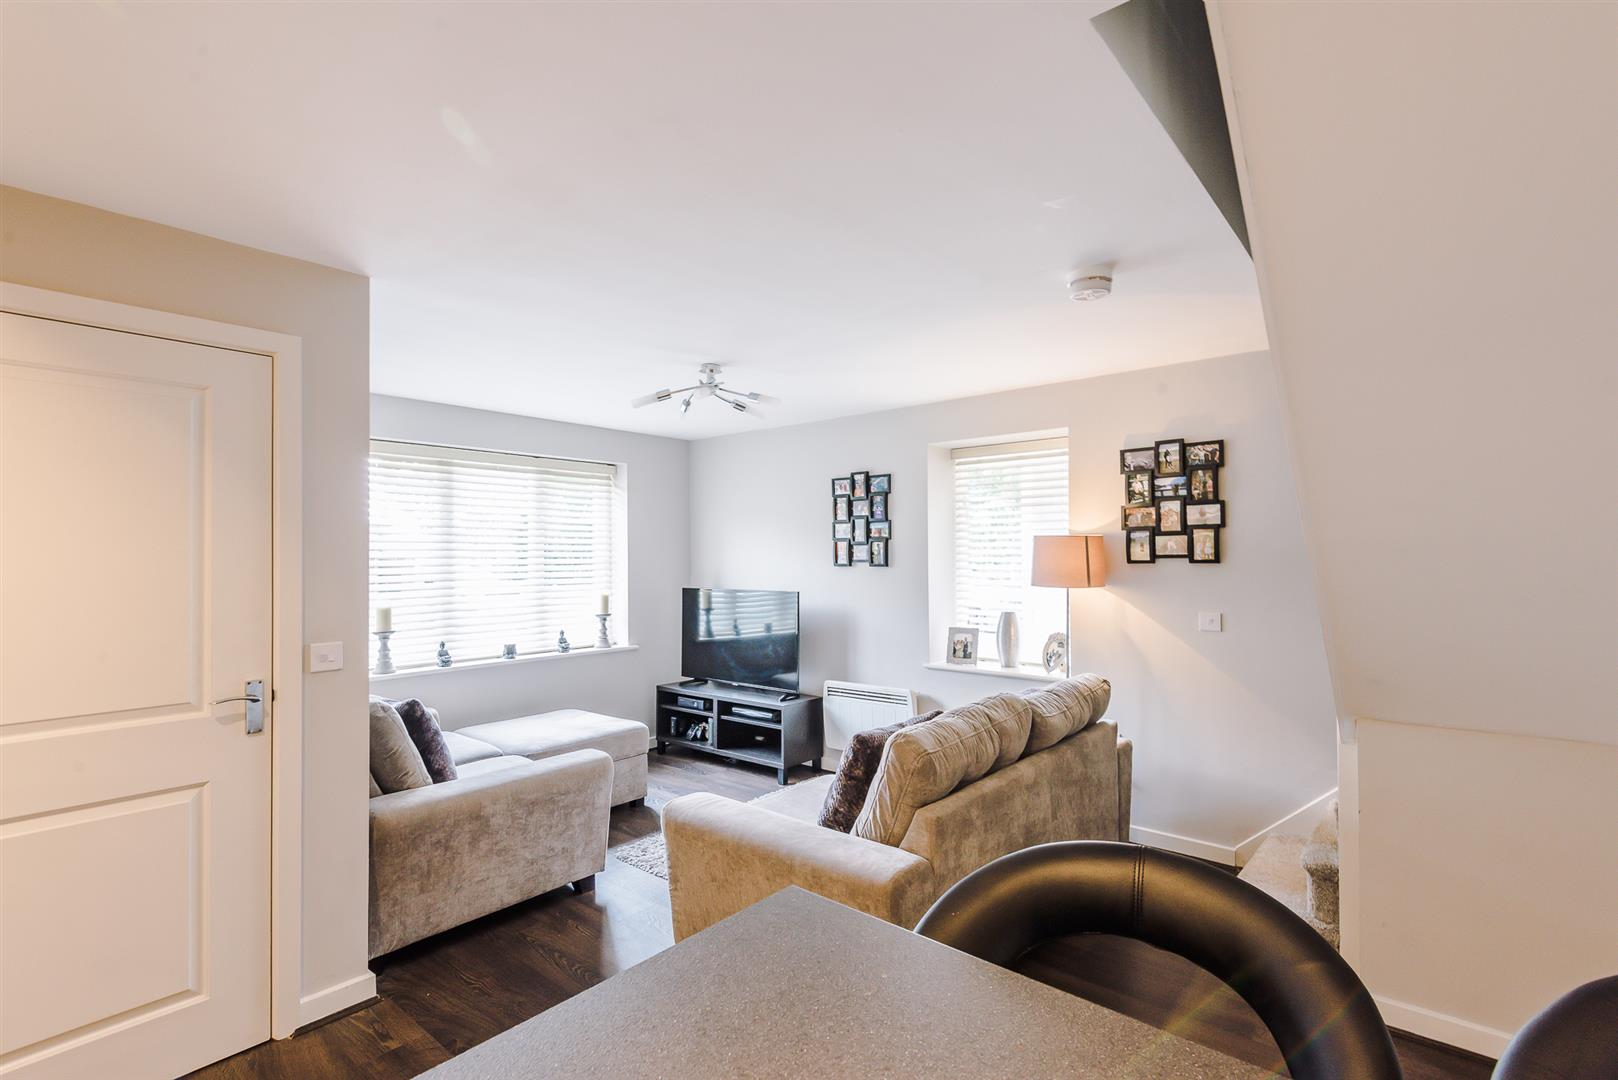 2 Bedroom Terraced House Sale Agreed Image 4